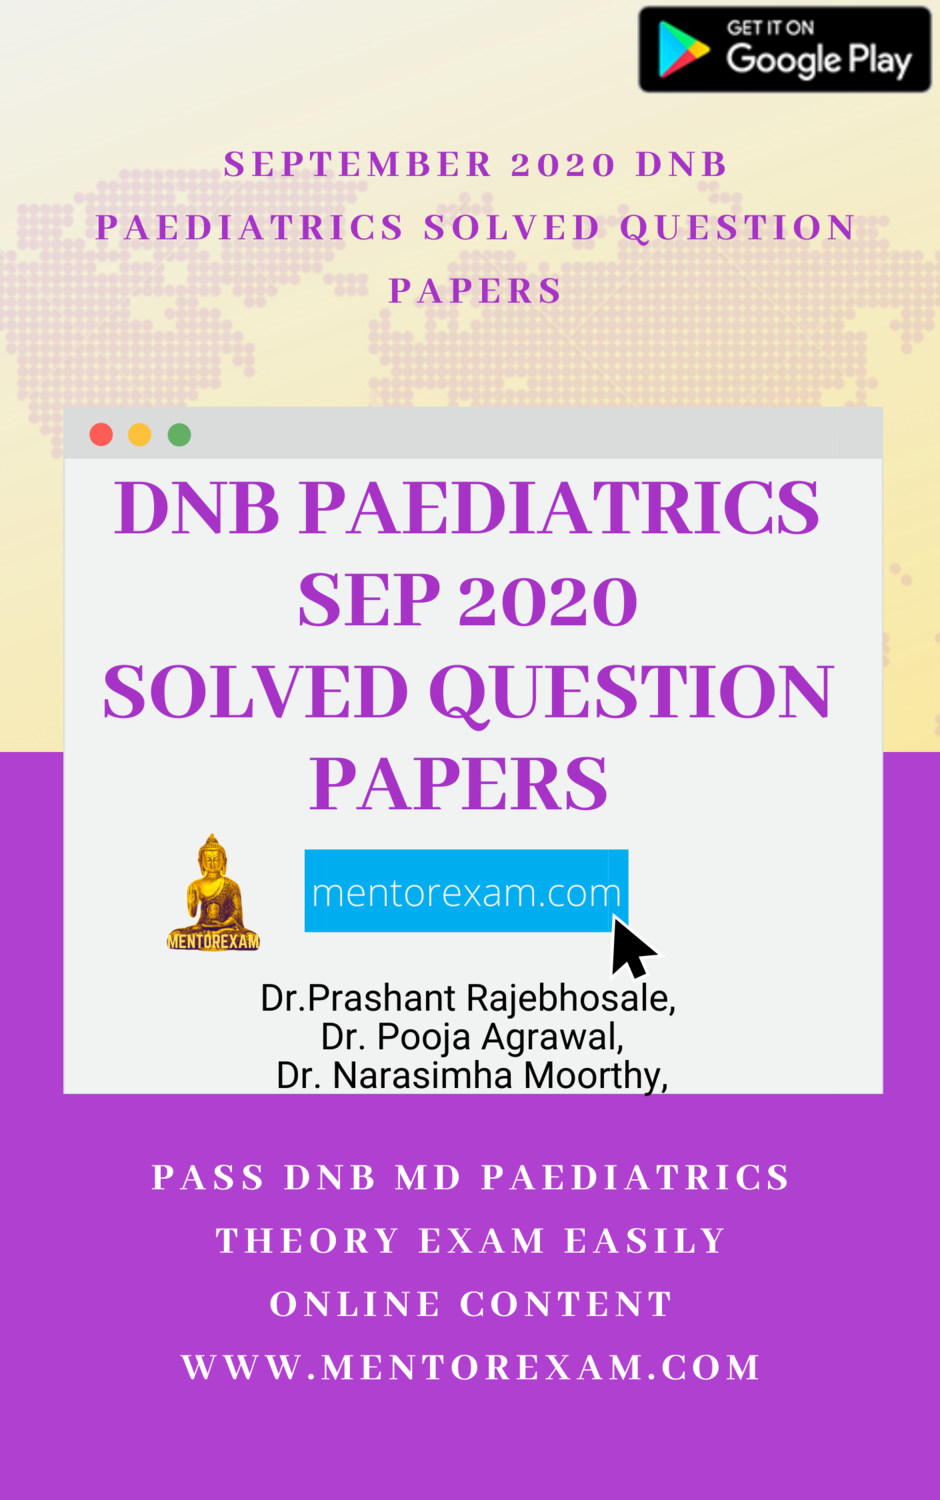 Pediatrics Sep 2020 DNB Solved Question Papers - Android App